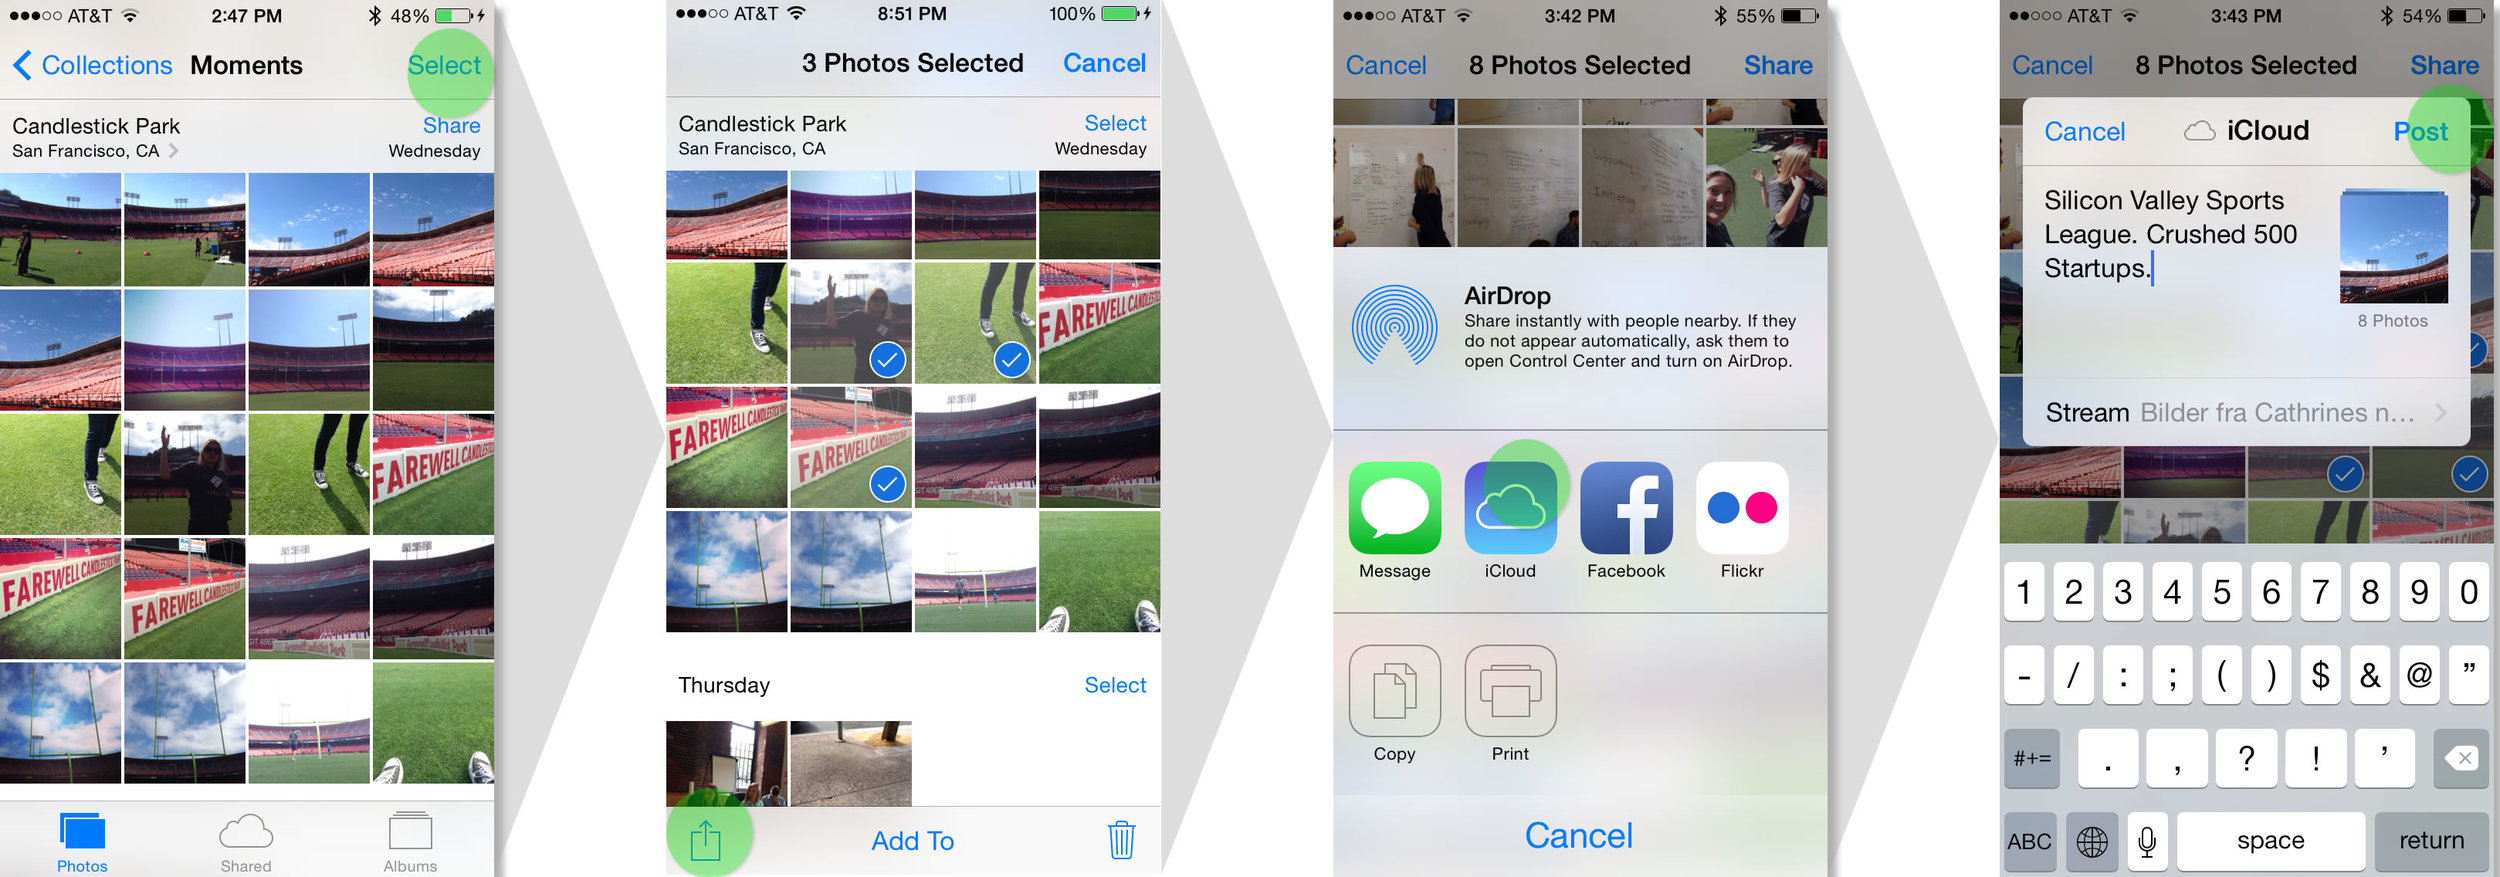 One of 5 current ways to create a photo stream. When asked to share photos via Photo Stream, all 8 users started by selecting photos, then tapping the sharing icon. Half of the test participants dropped off and hit cancel at the third step when Photo Stream was not a sharing option.